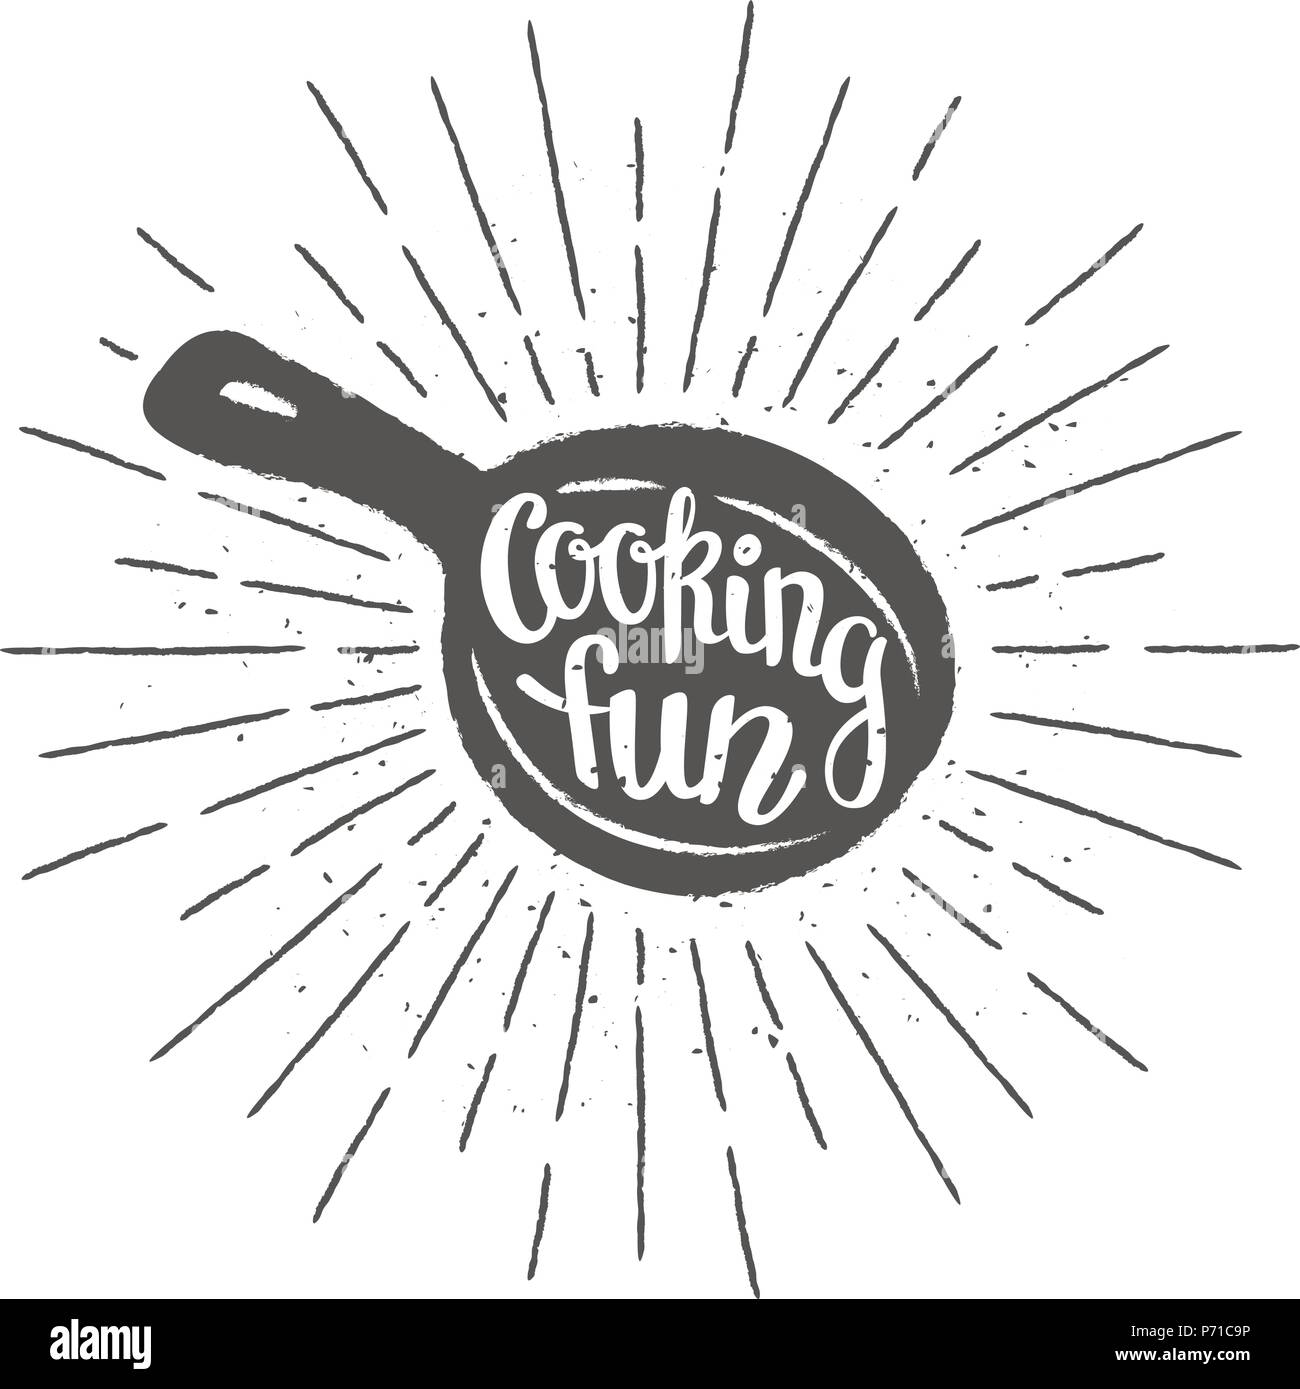 Pan silhoutte with lettering - Cooking fun - and vintage sun rays. Good for cooking logotypes, bades or posters. - Stock Image